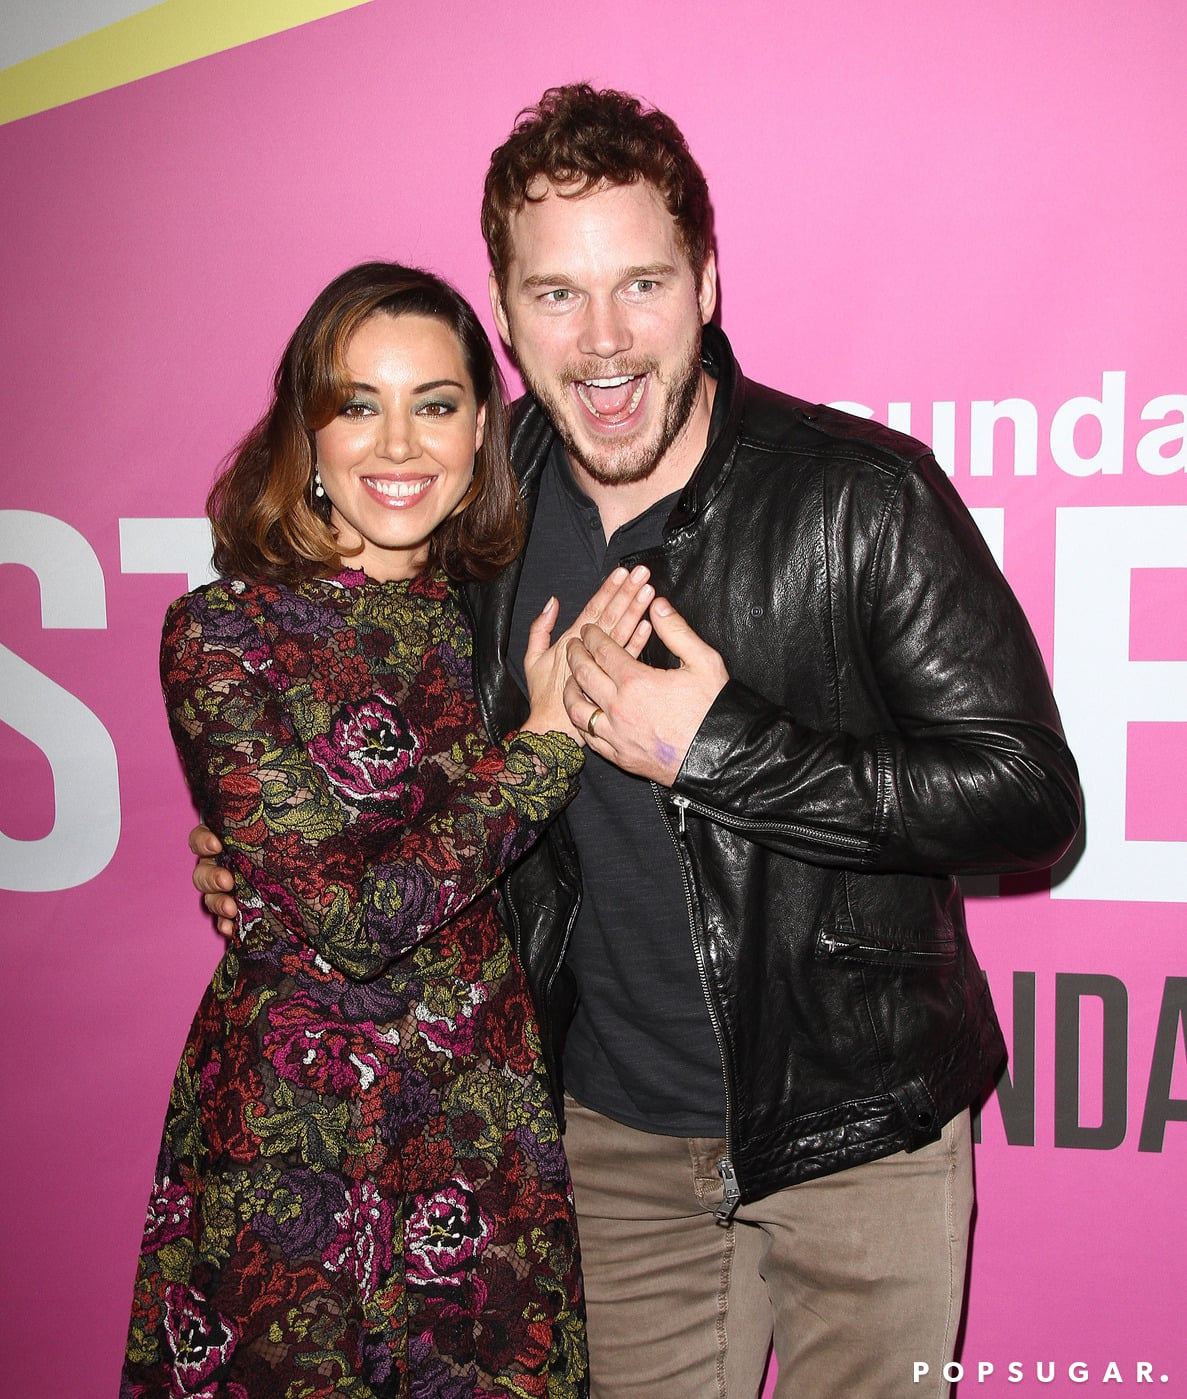 Chris Pratt got silly and sweet with his Parks and Recreation costar Aubrey Plaza at the Life After Beth premiere in LA on Friday.